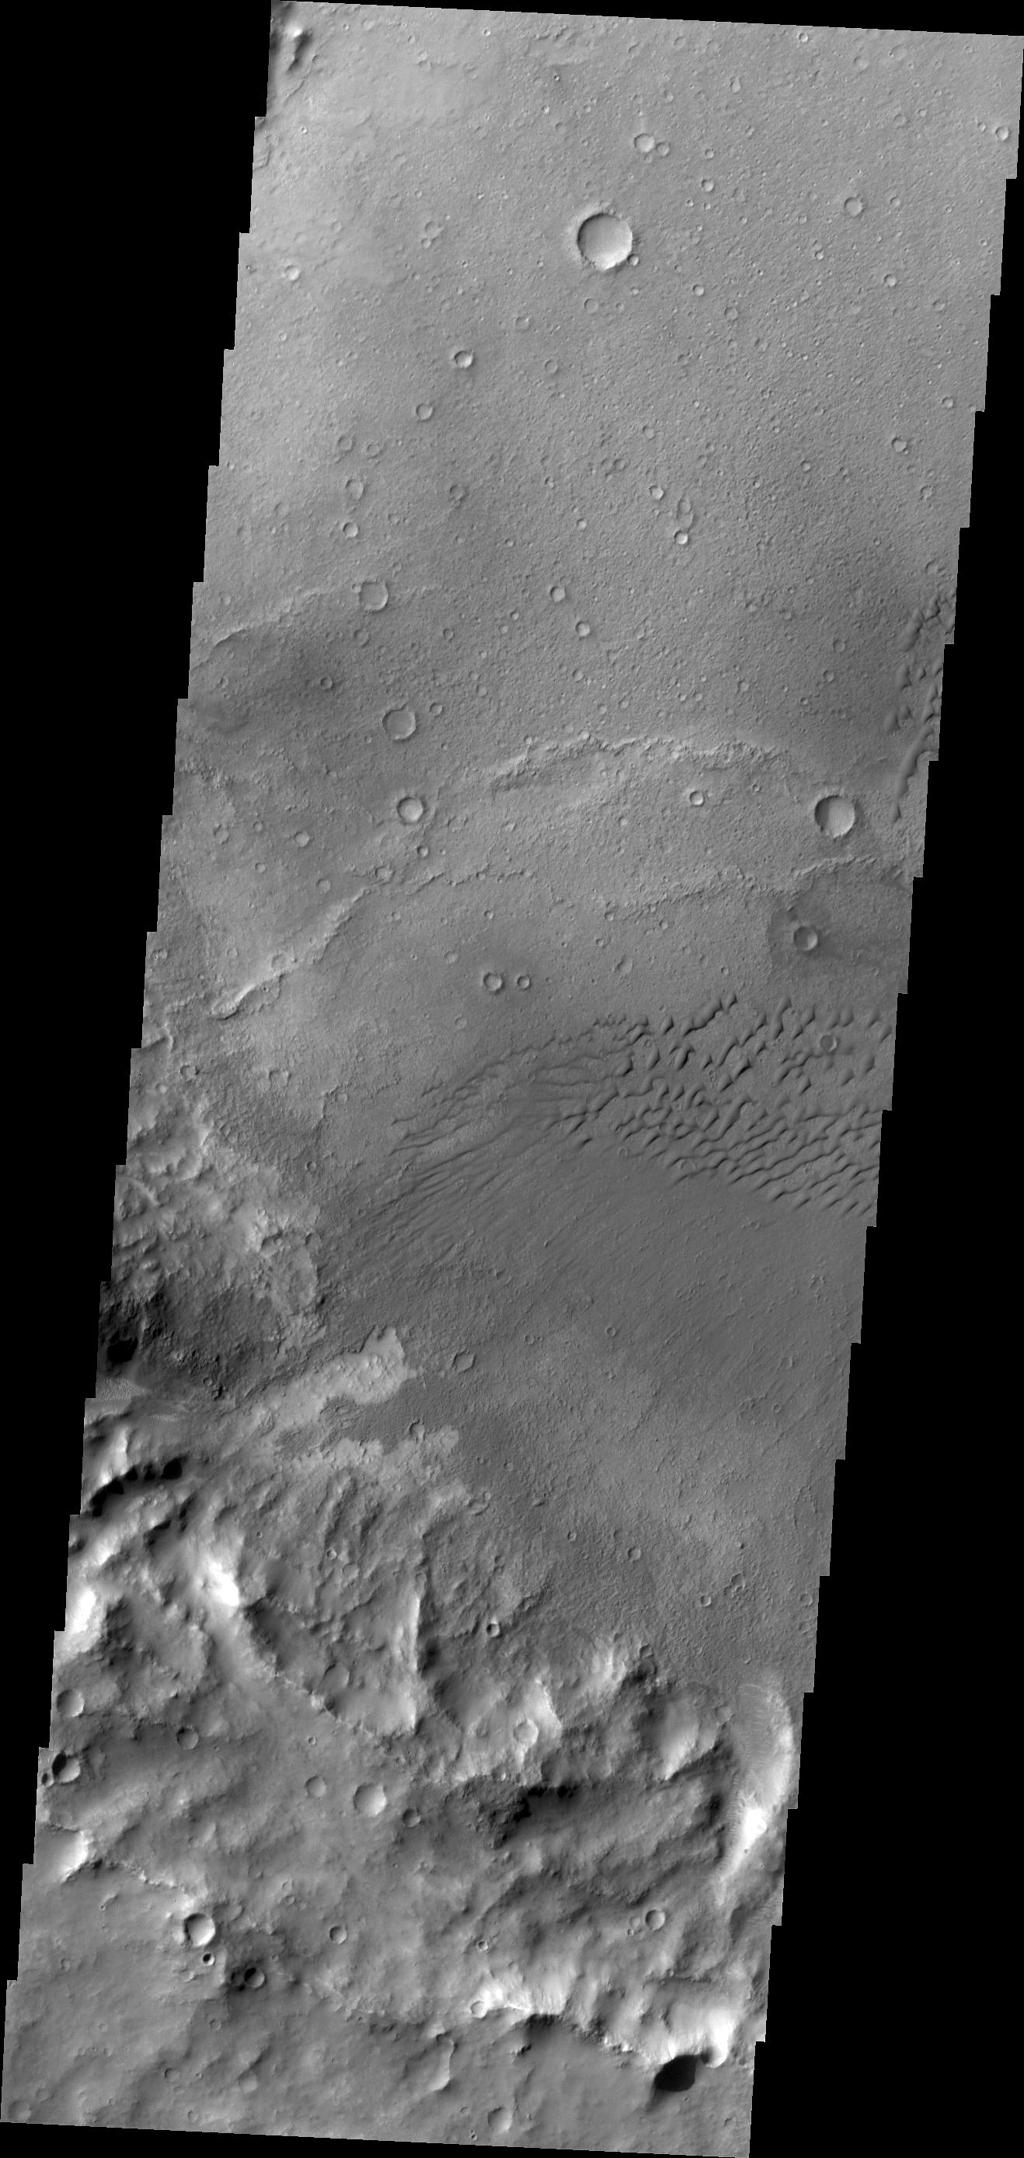 The dunes in this image captured by NASA's 2001 Mars Odyssey are located in an unnamed crater in Terra Cimmeria.